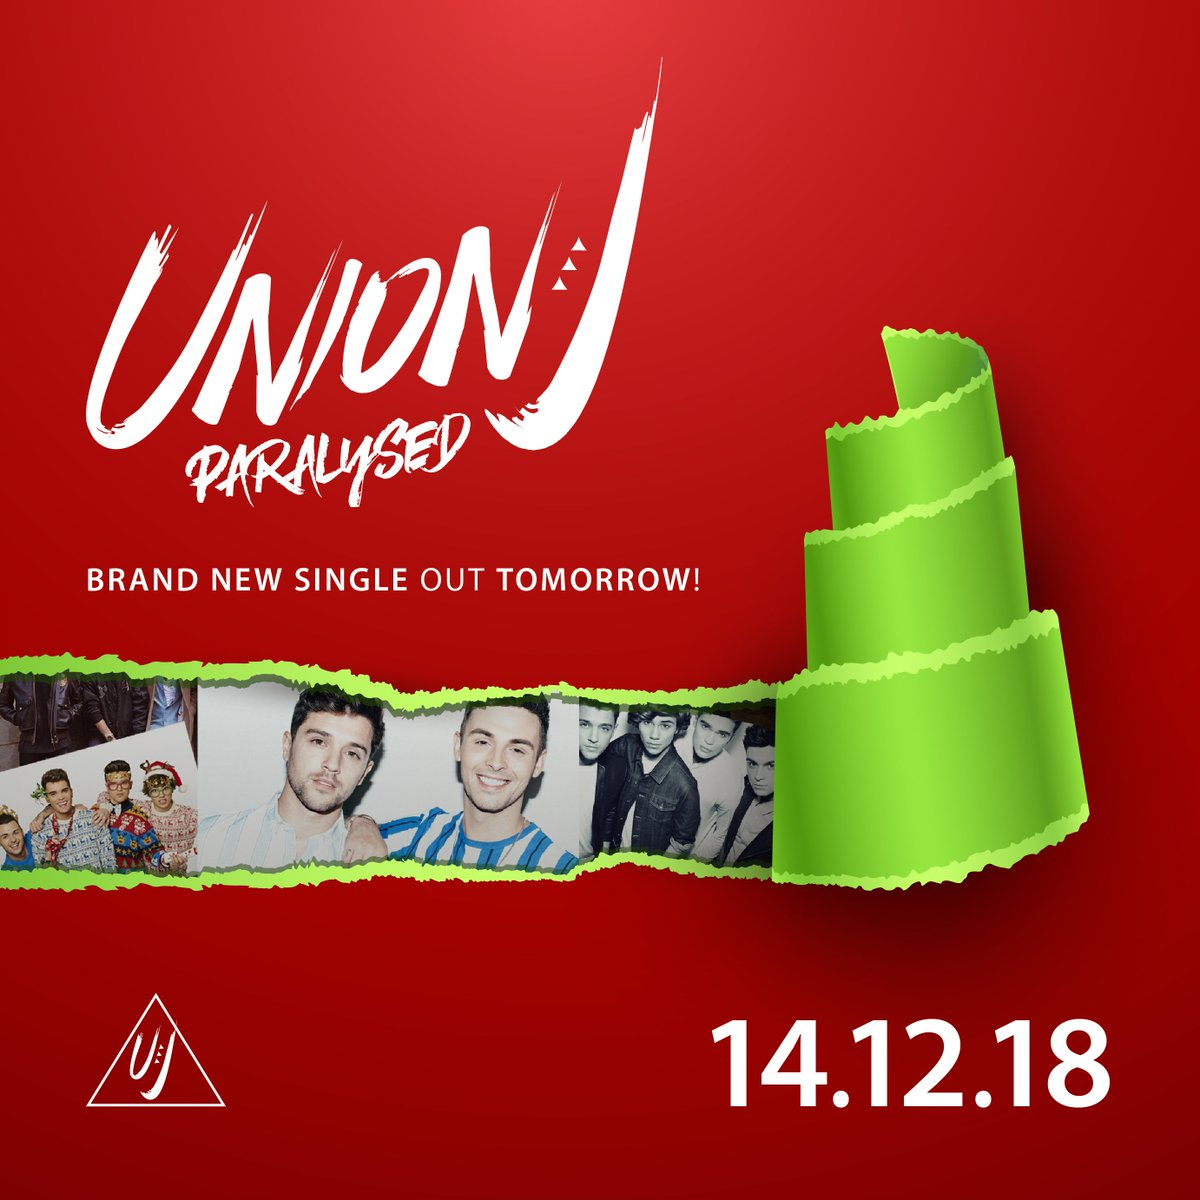 The wait is almost over… #Paralysed – our brand new single is released TOMORROW!! #christmascomesearly #newmusicalert #newmusicfriday #unionj<br>http://pic.twitter.com/0JoZzzn8Zr